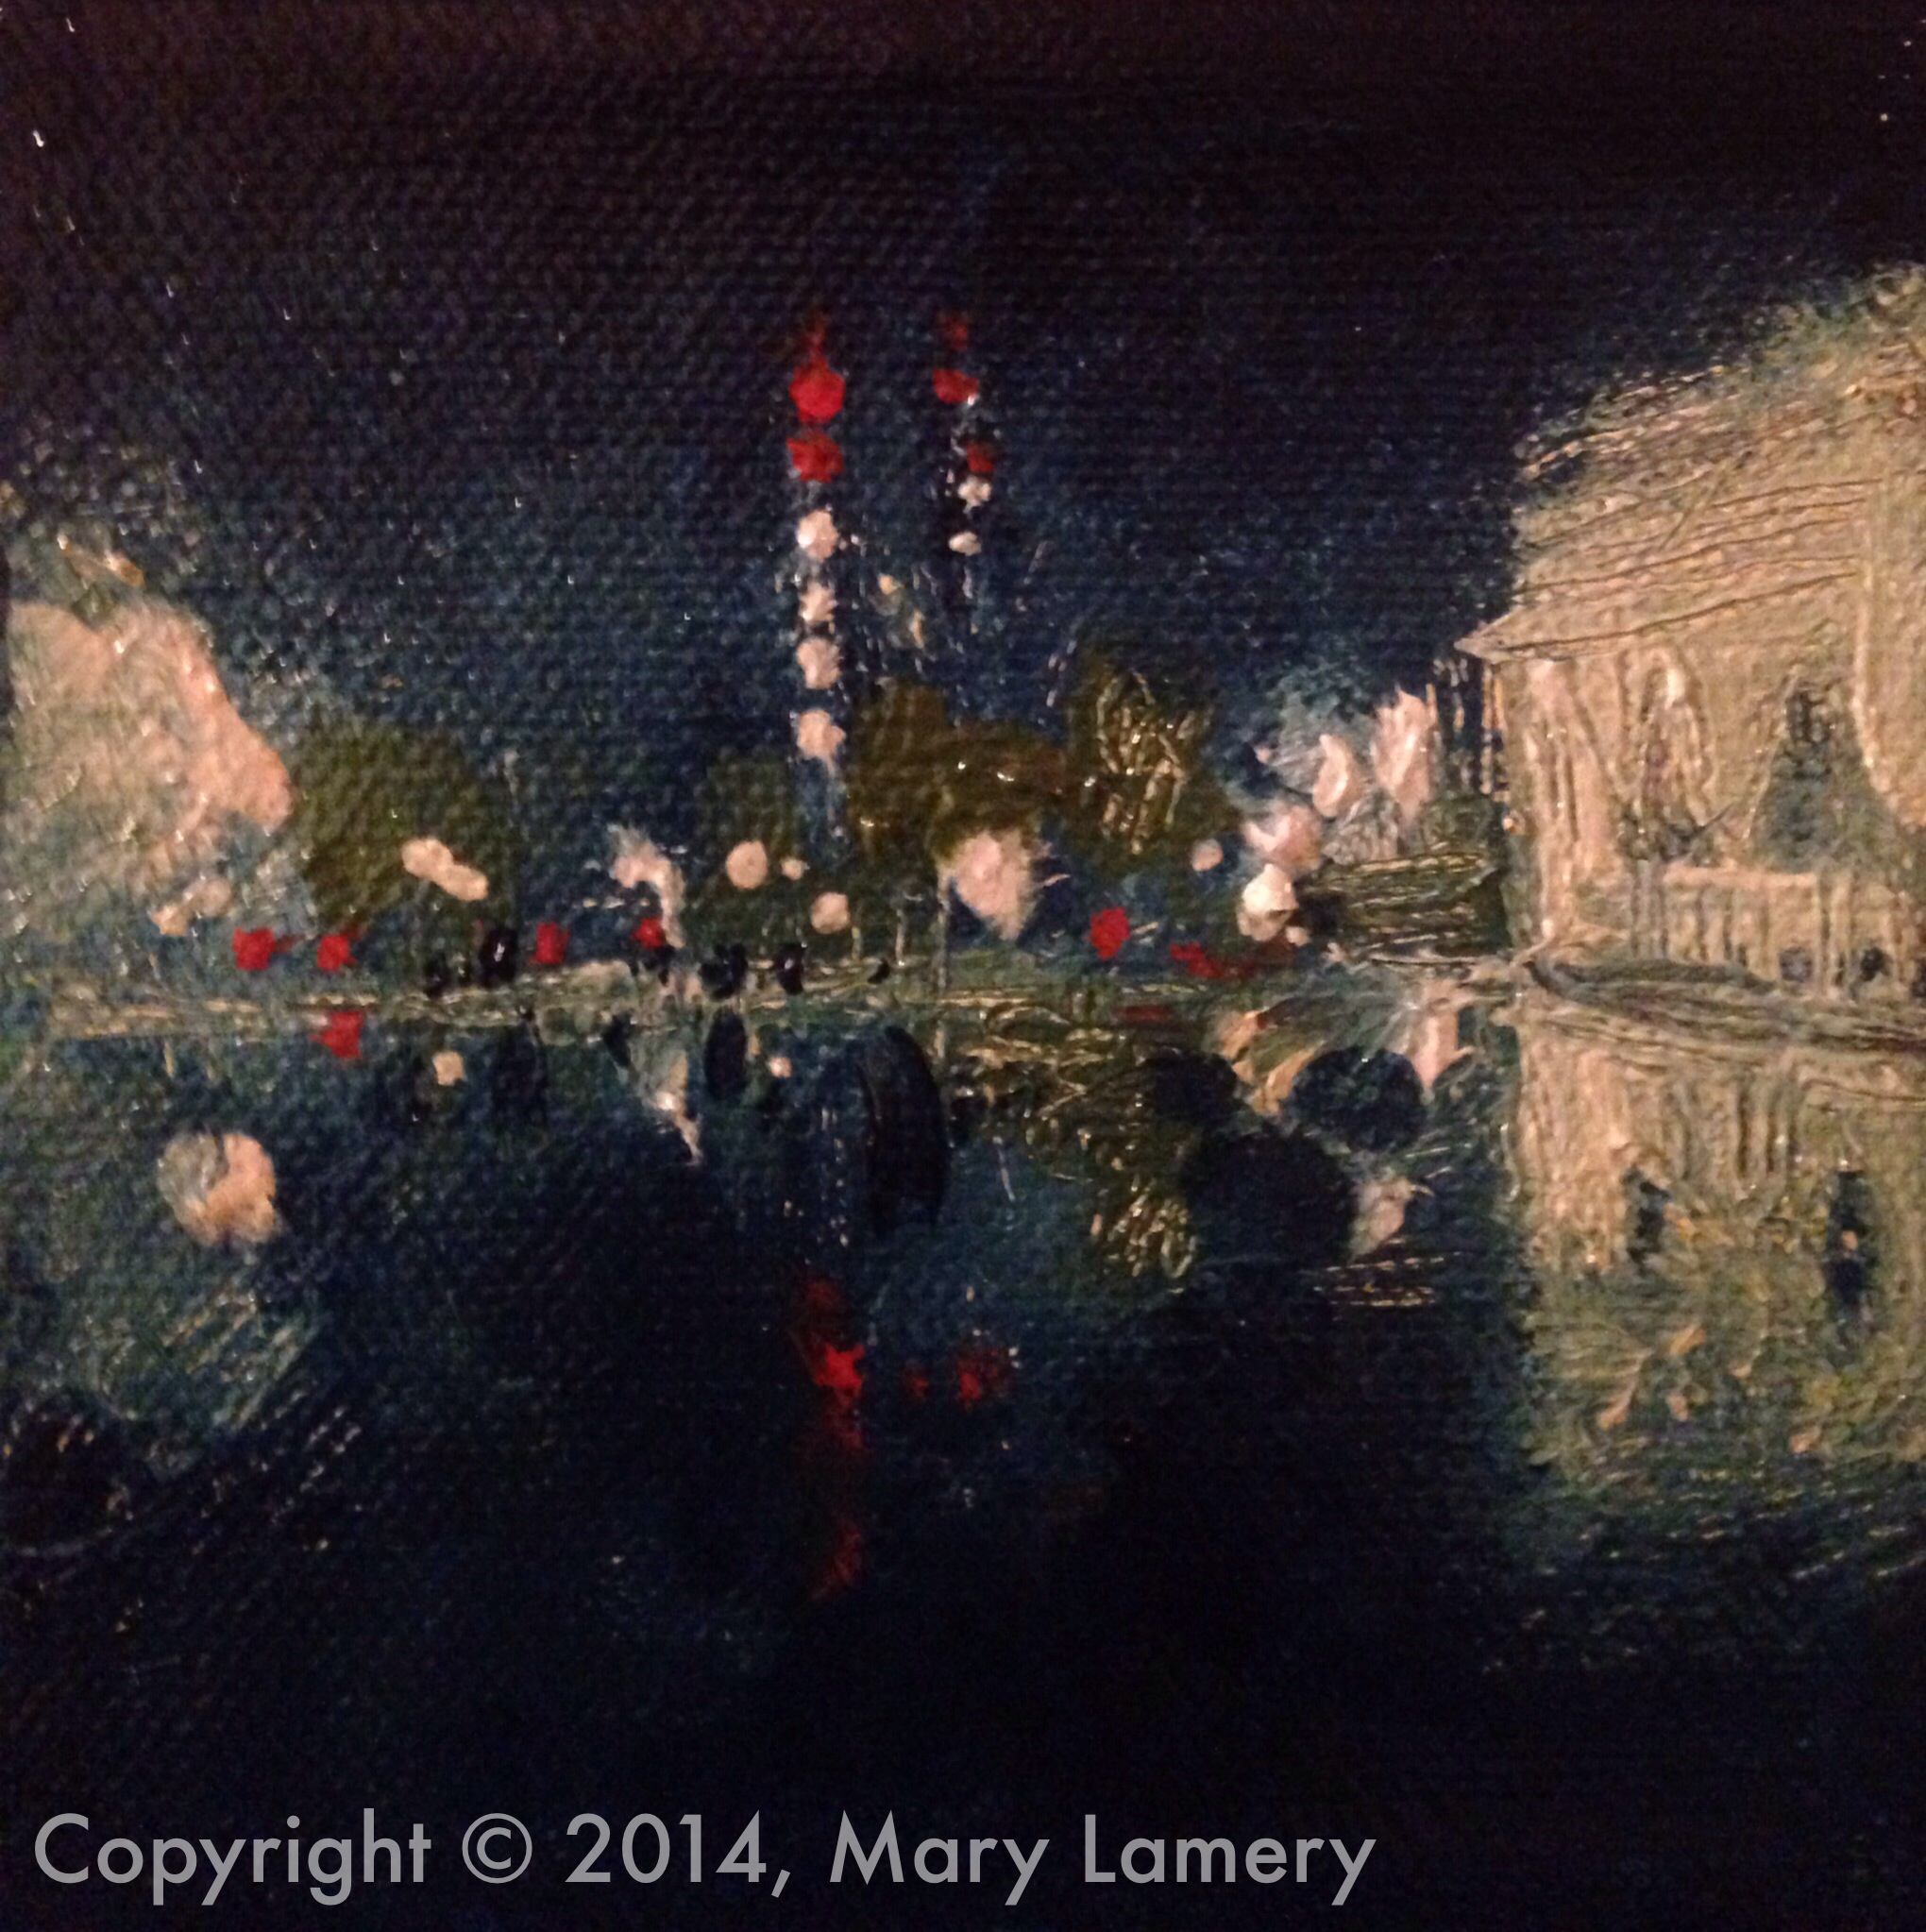 """Reflection Pool, Cal Anderson Park. 4""""x4"""". Oil on Canvas. 2014.  Day 16. September 16, 2014   """"This sweet painting portrays the romance and mystery that is Seattle at night. It is at once sparkling and energetic, moody and reflective. My parents were young newlyweds in the mid-fifties living downtown --mother a nurse at Virginia-Mason, father a radioman for the Coast Guard. They often spoke about their long walks together at night. I can't say for certain that they ever wandered into this portion of the city, but oh, how I love to imagine them there, strolling hand in hand on a late summer evening."""""""